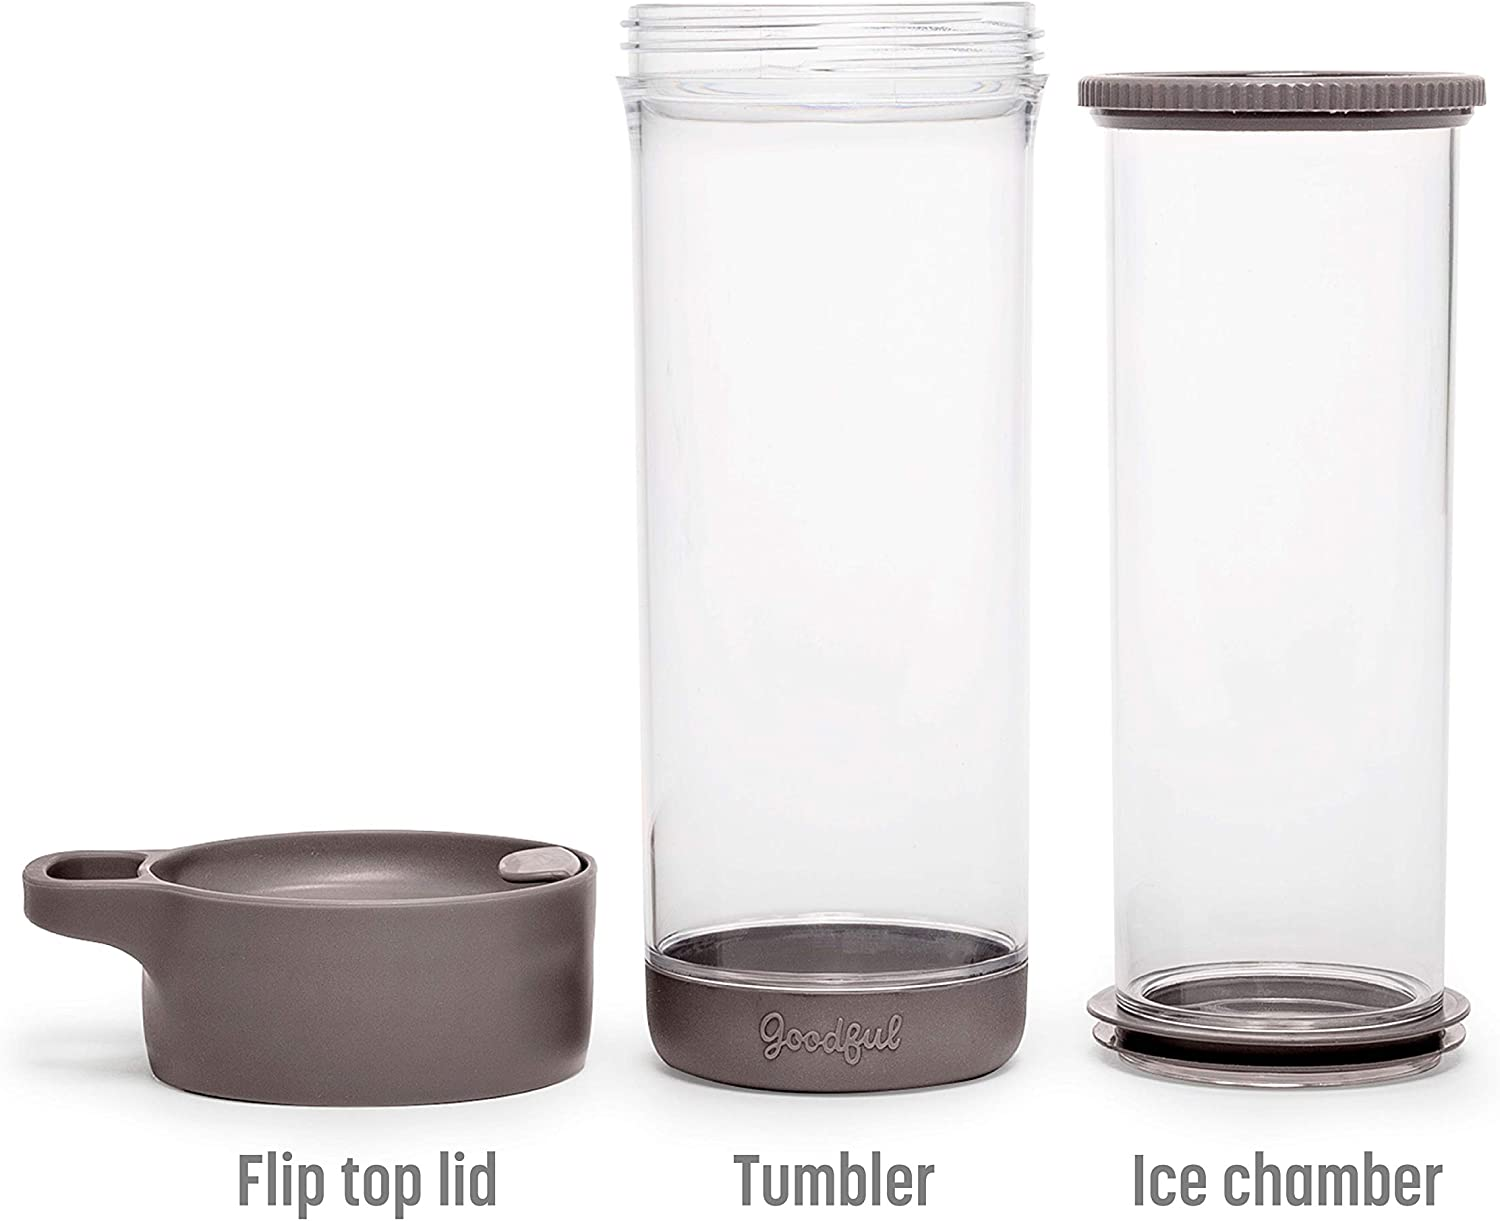 Dishwasher Safe Charcoal Gray Double Wall Travel Mug with Stainless Steel Infuser 16 Ounce Leakproof Goodful Go Iced Tumbler For Loose Leaf or Bagged Teas 16 oz